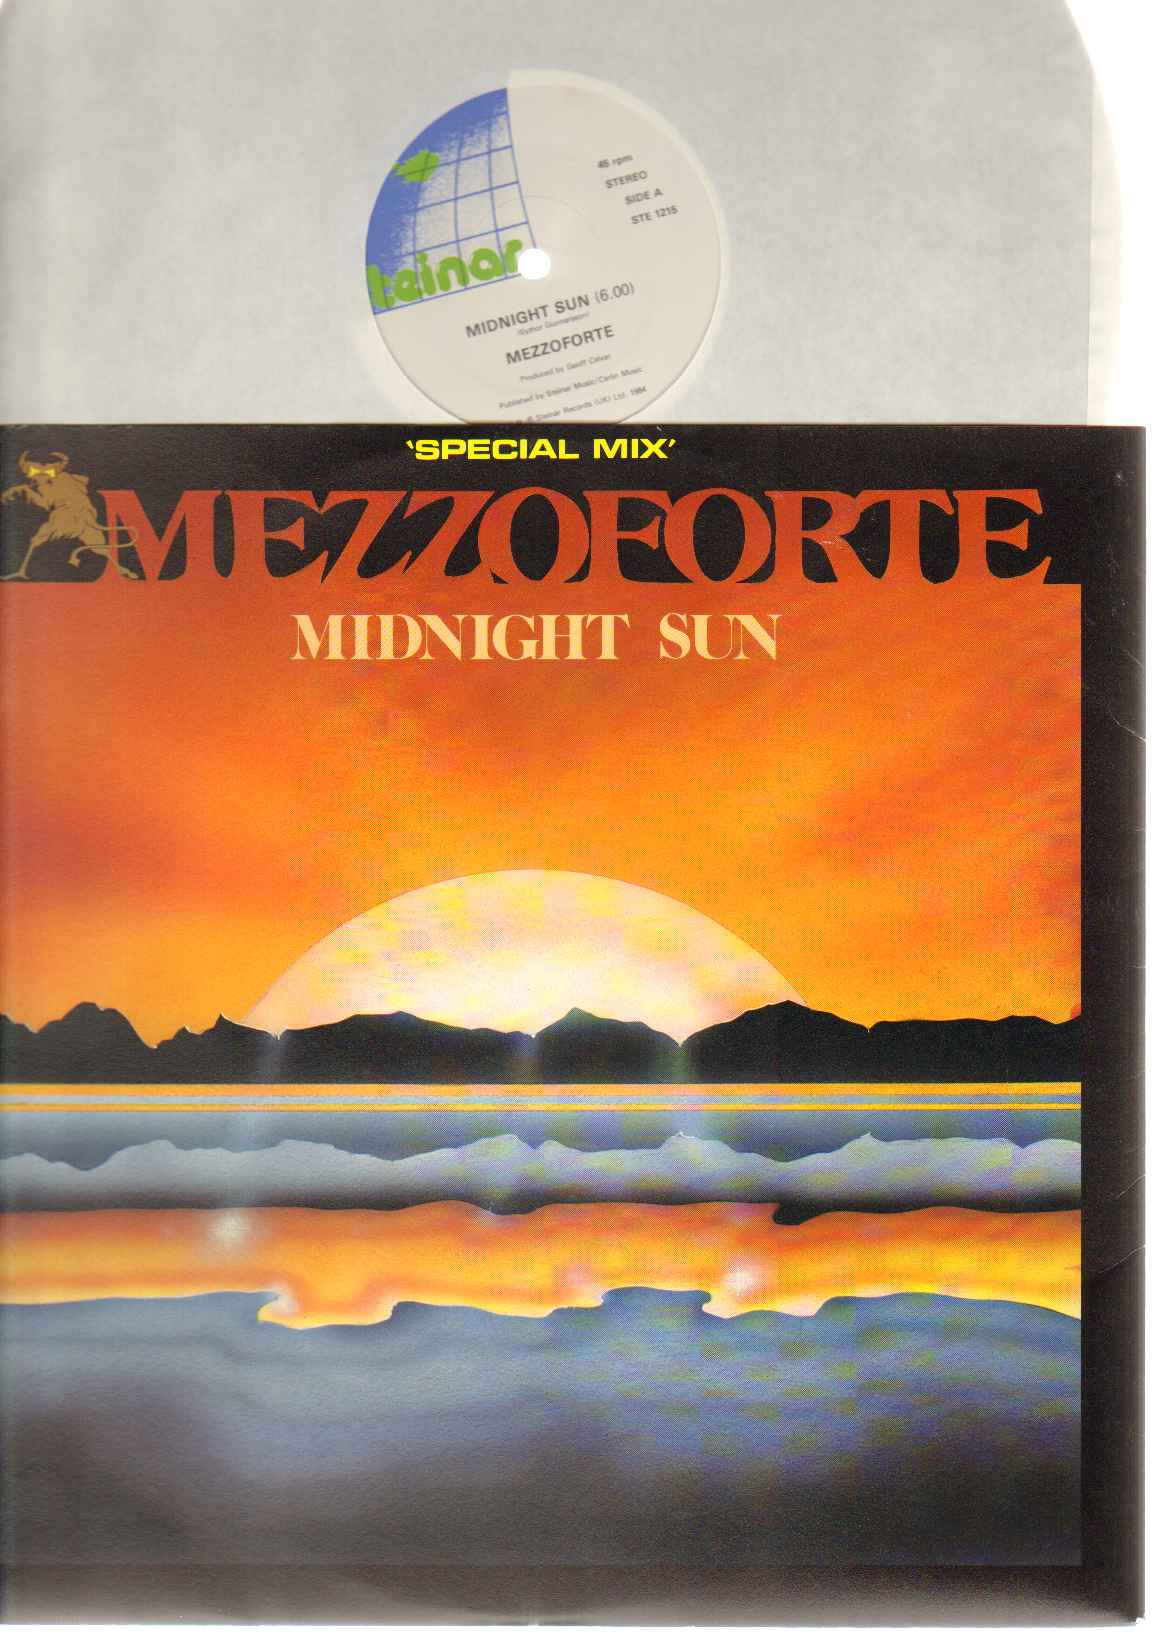 Mezzoforte - Midnight Sun Record